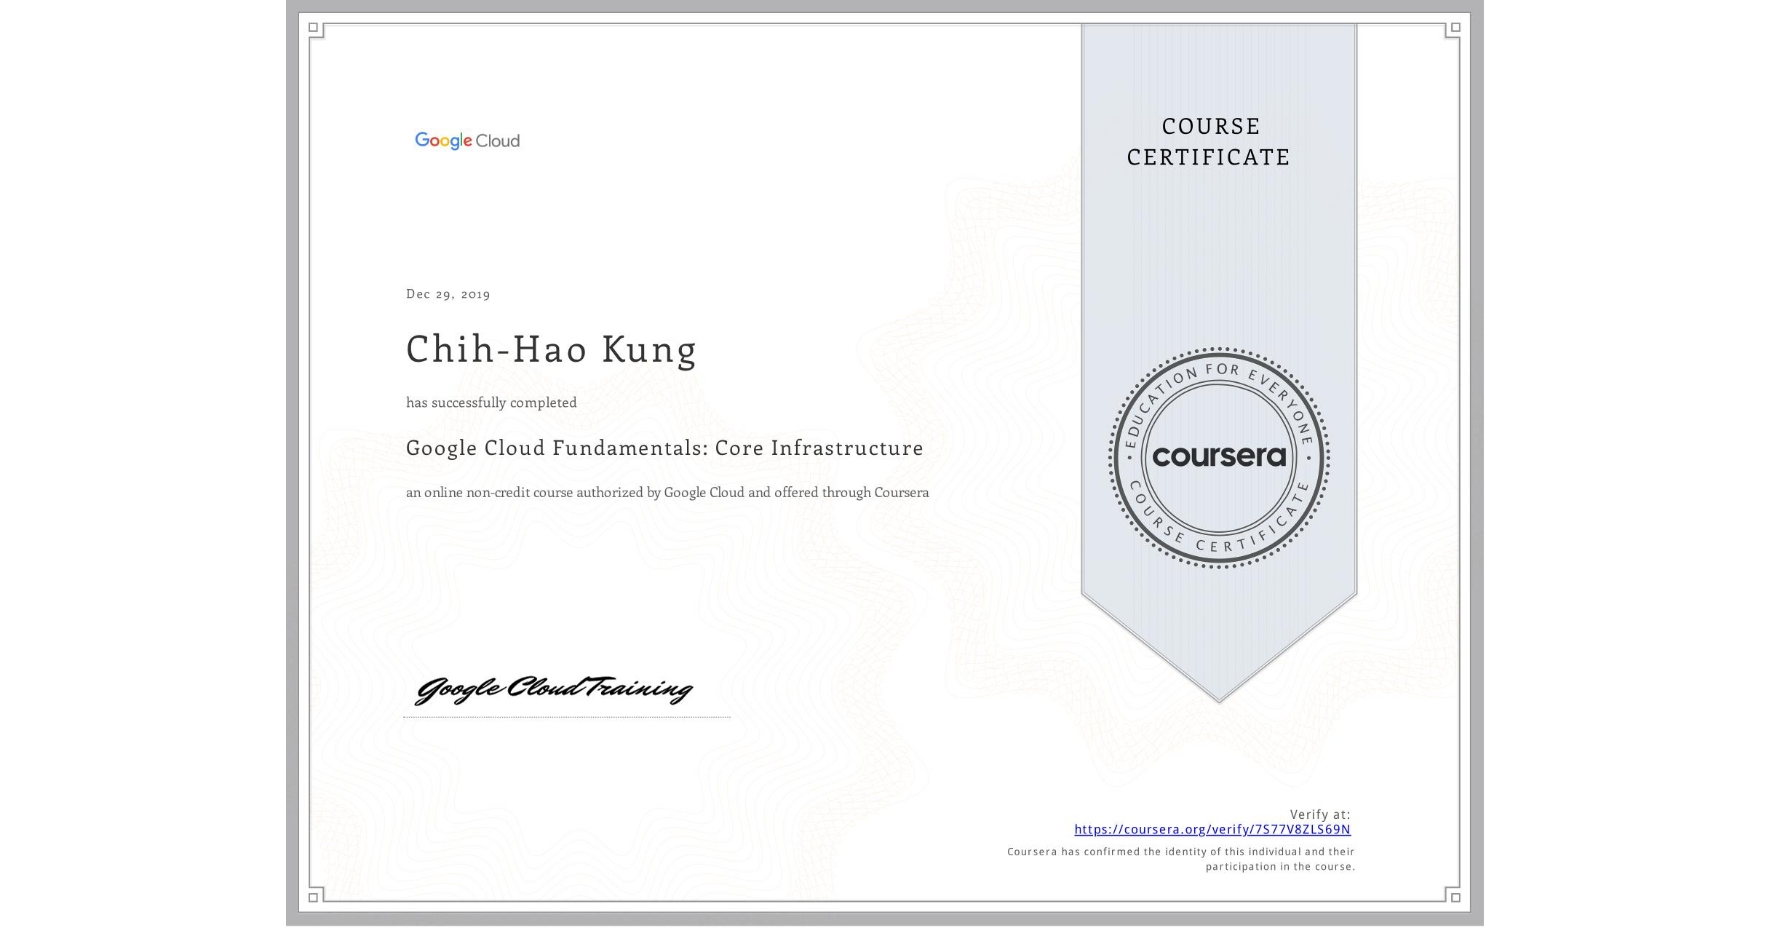 View certificate for Chih-Hao Kung, Google Cloud Platform Fundamentals: Core Infrastructure, an online non-credit course authorized by Google Cloud and offered through Coursera